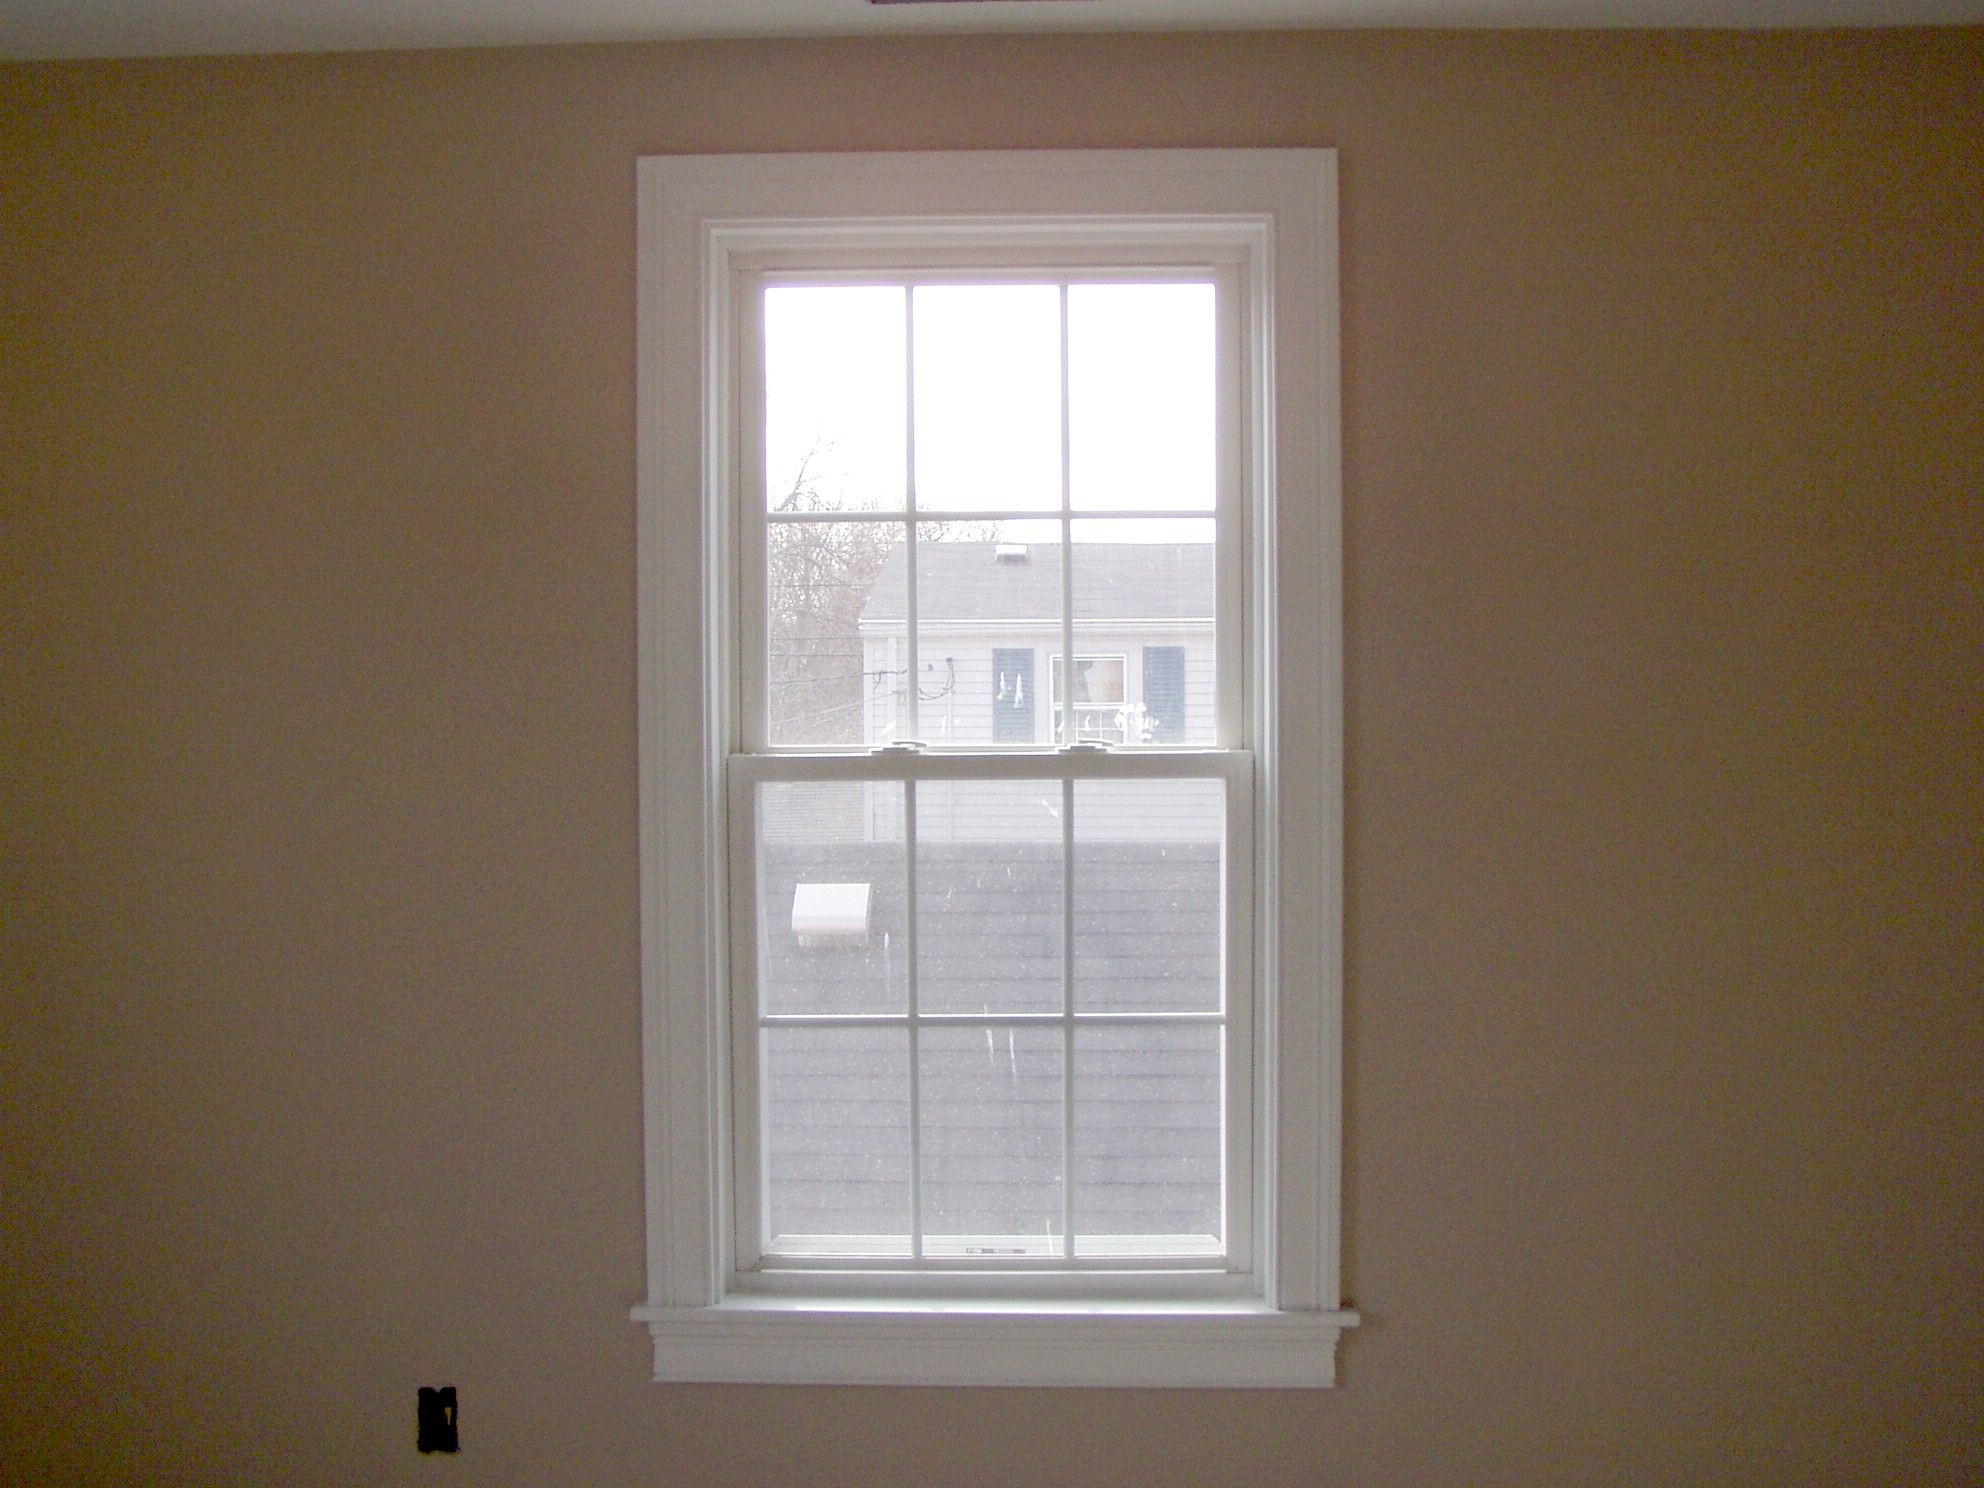 New construction door trim paint and window trim master for Mid century modern interior window trim